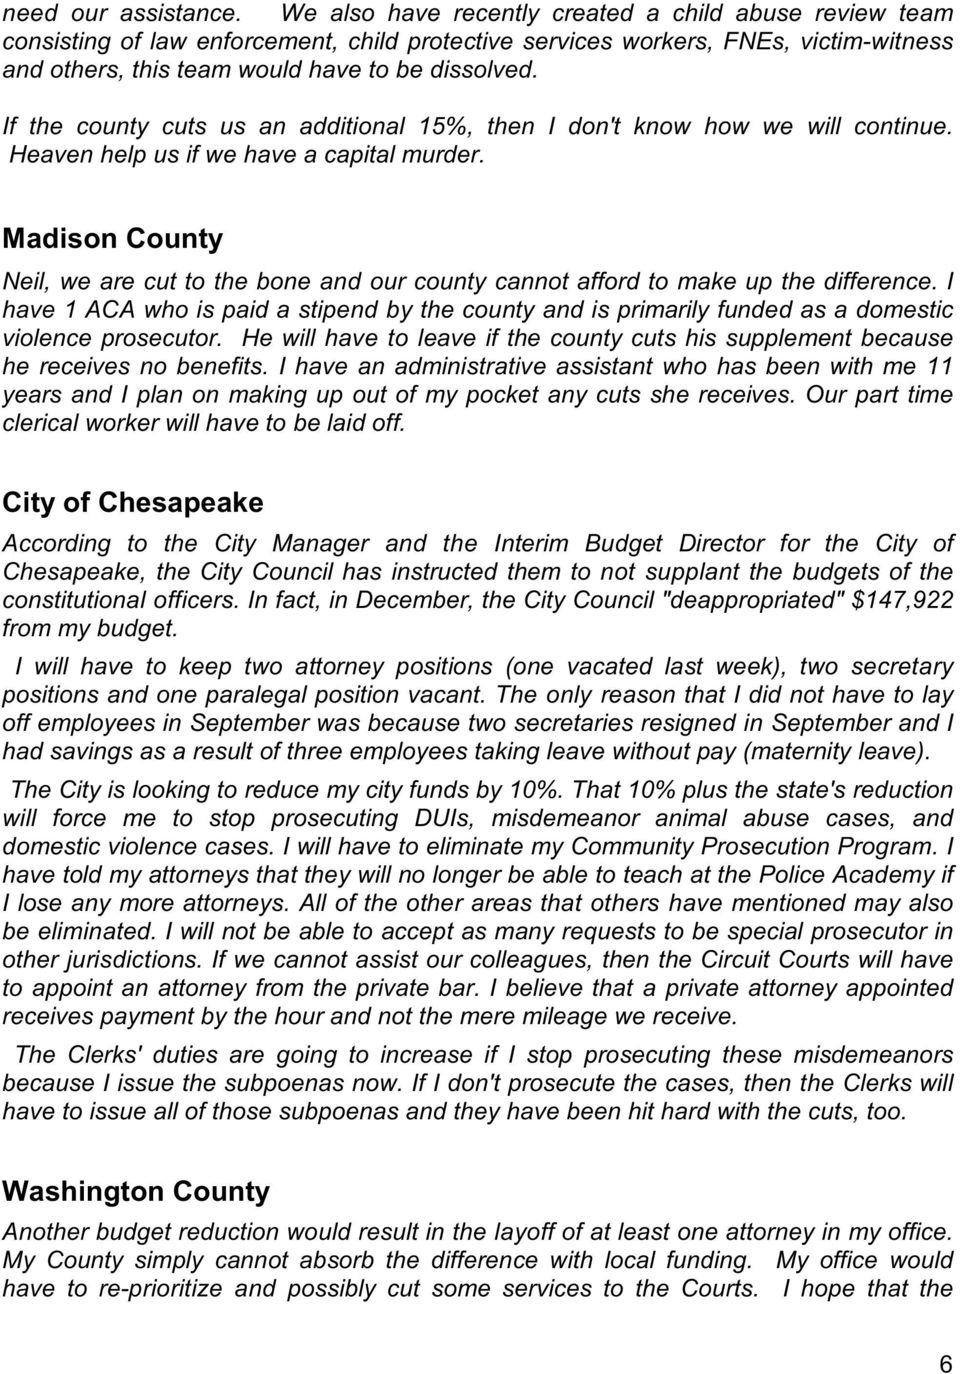 If the county cuts us an additional 15%, then I don't know how we will continue. Heaven help us if we have a capital murder.